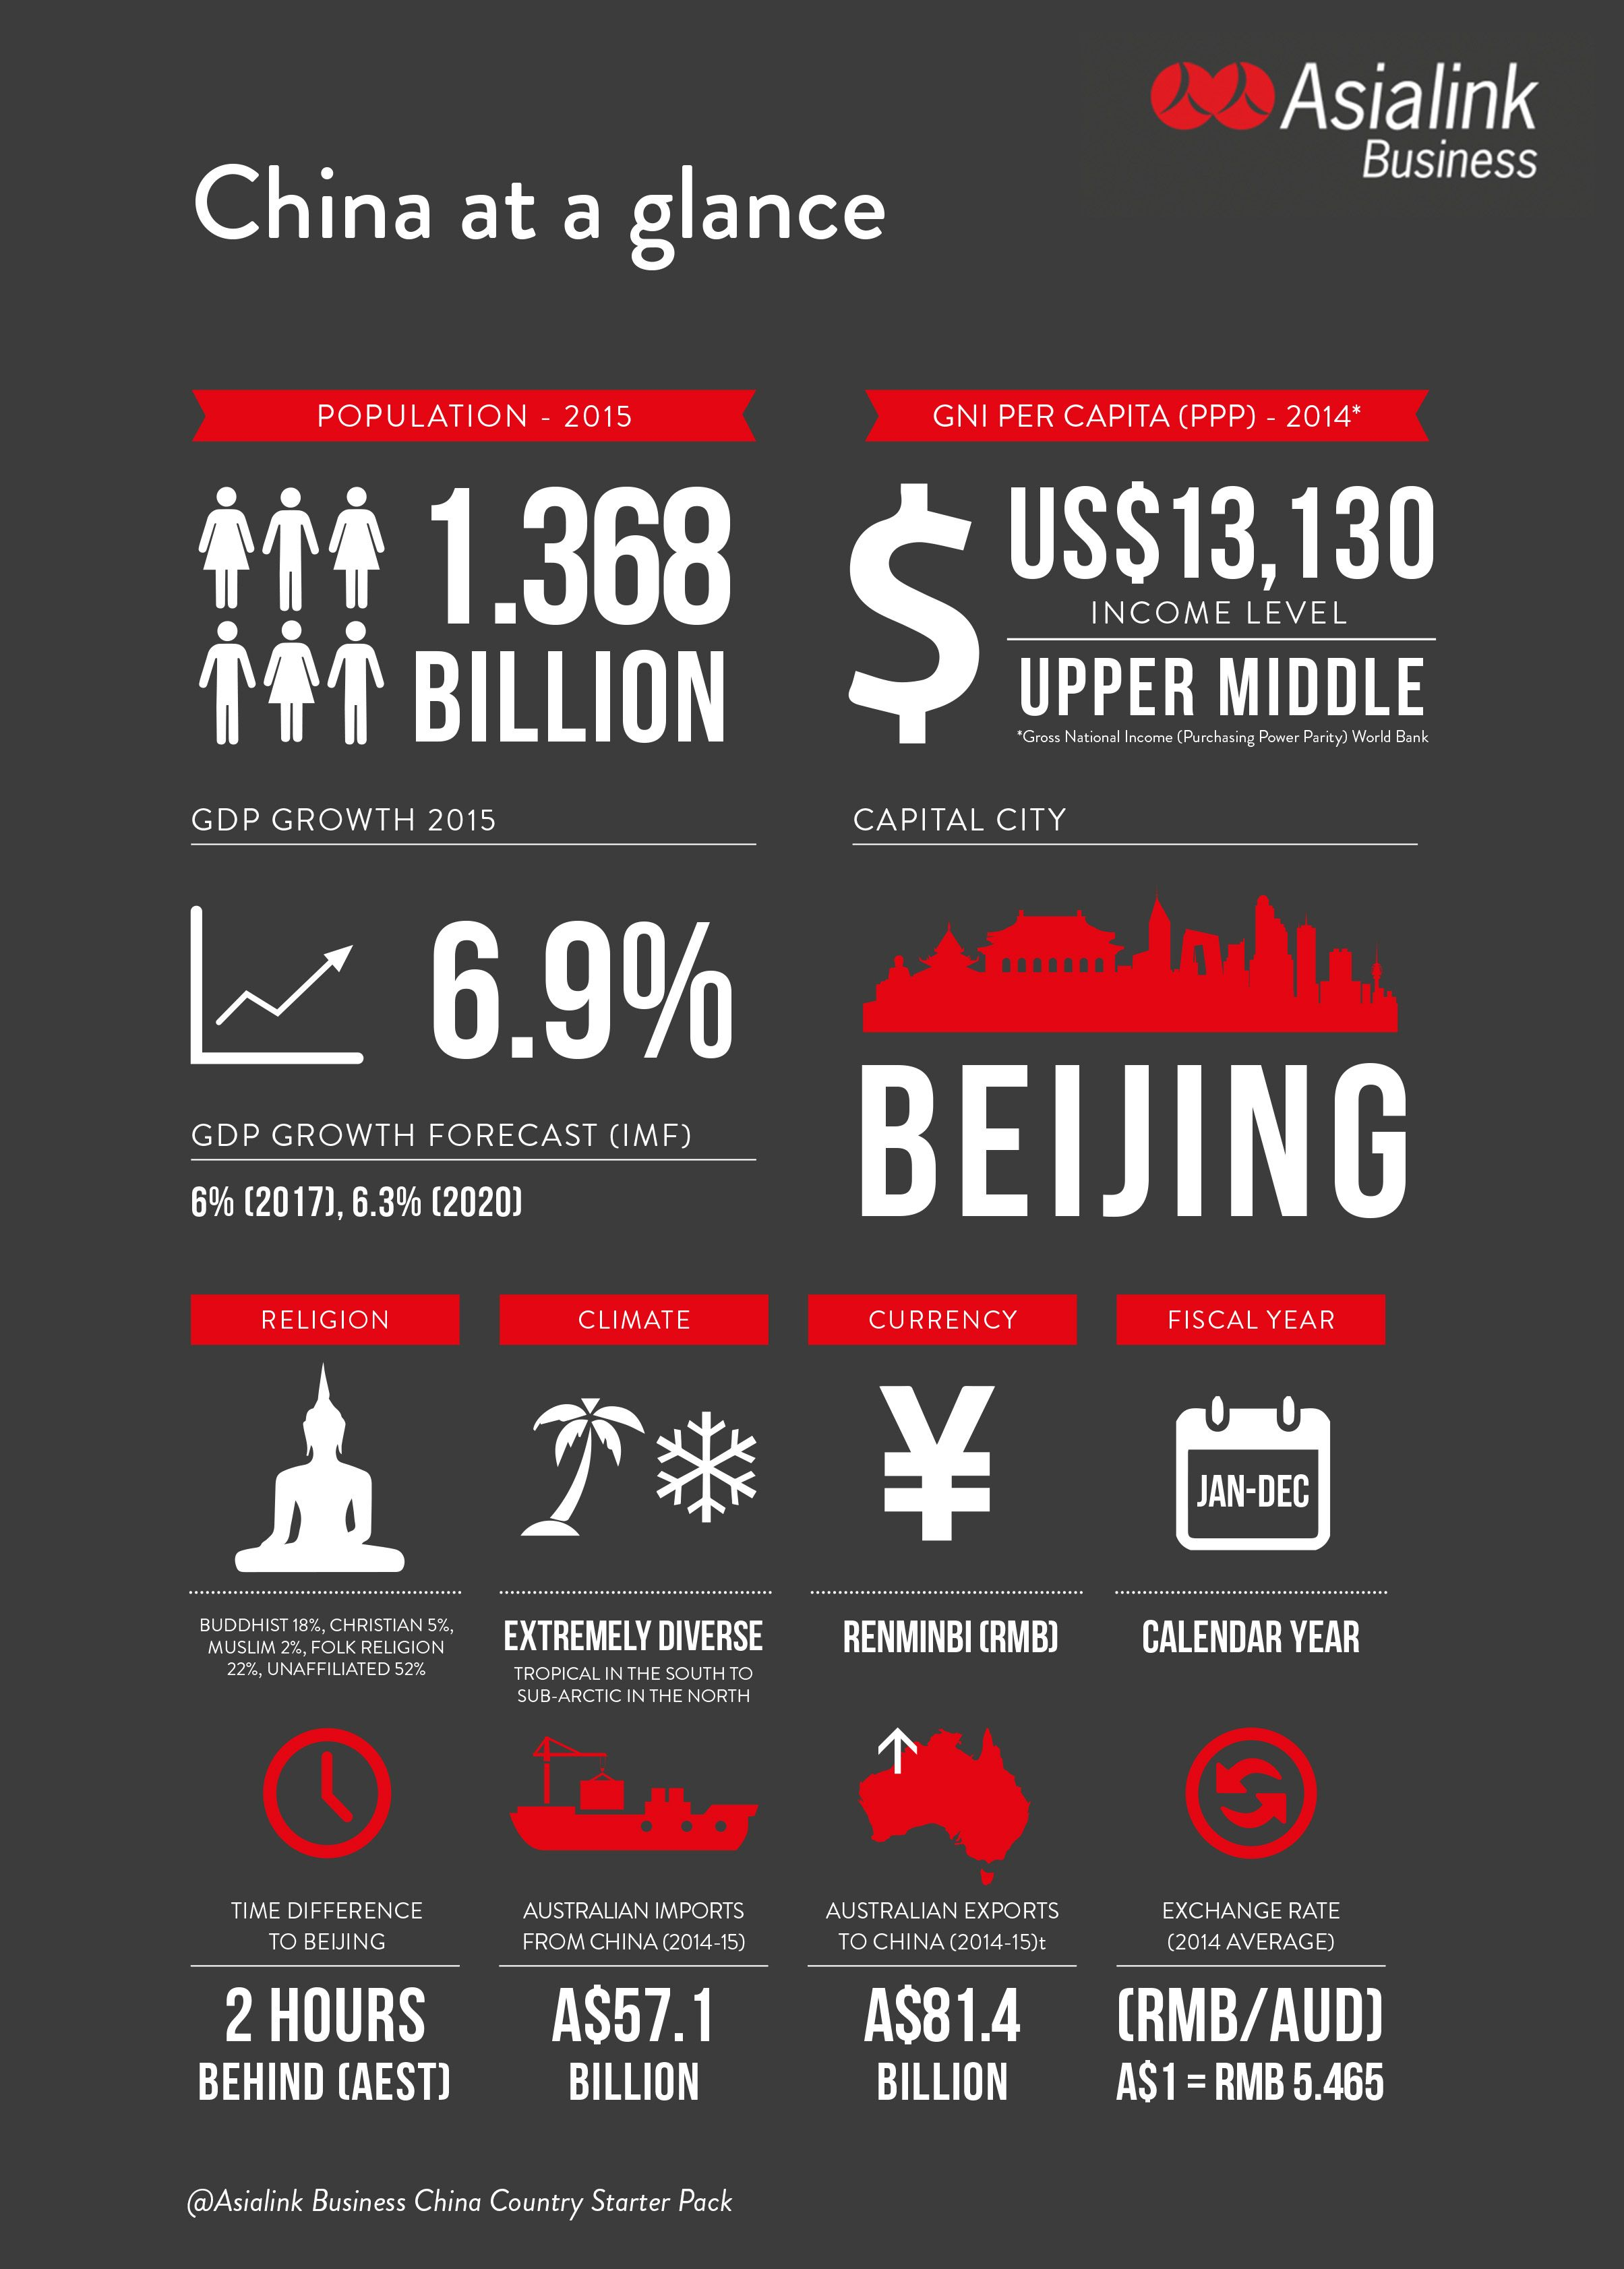 Doing Business in China | Asialink Business | Brand